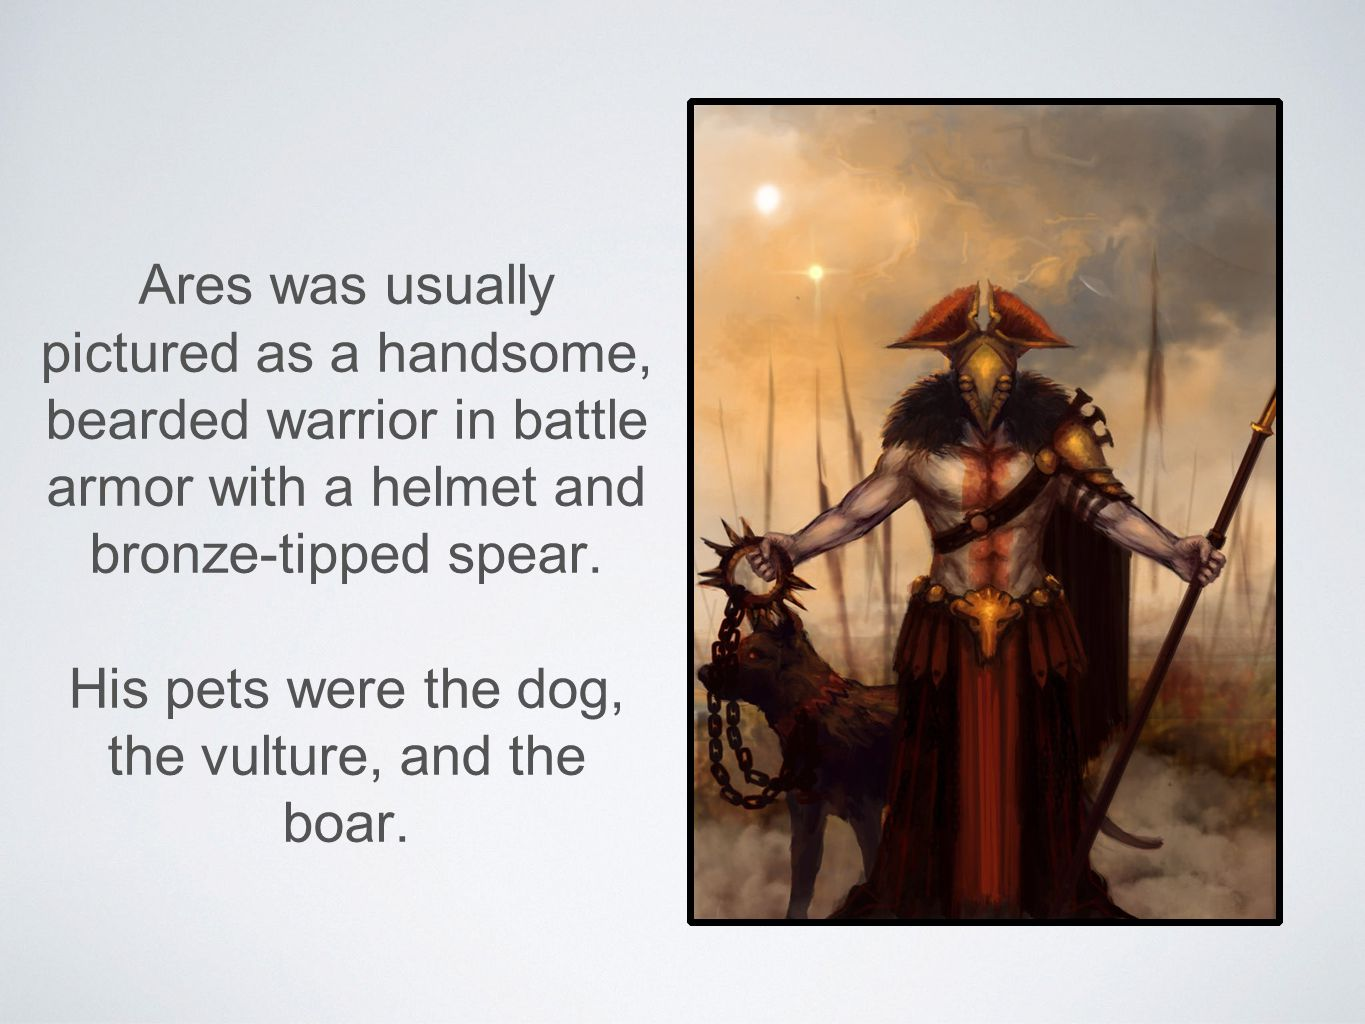 Ares was usually pictured as a handsome, bearded warrior in battle armor with a helmet and bronze-tipped spear. His pets were the dog, the vulture, an